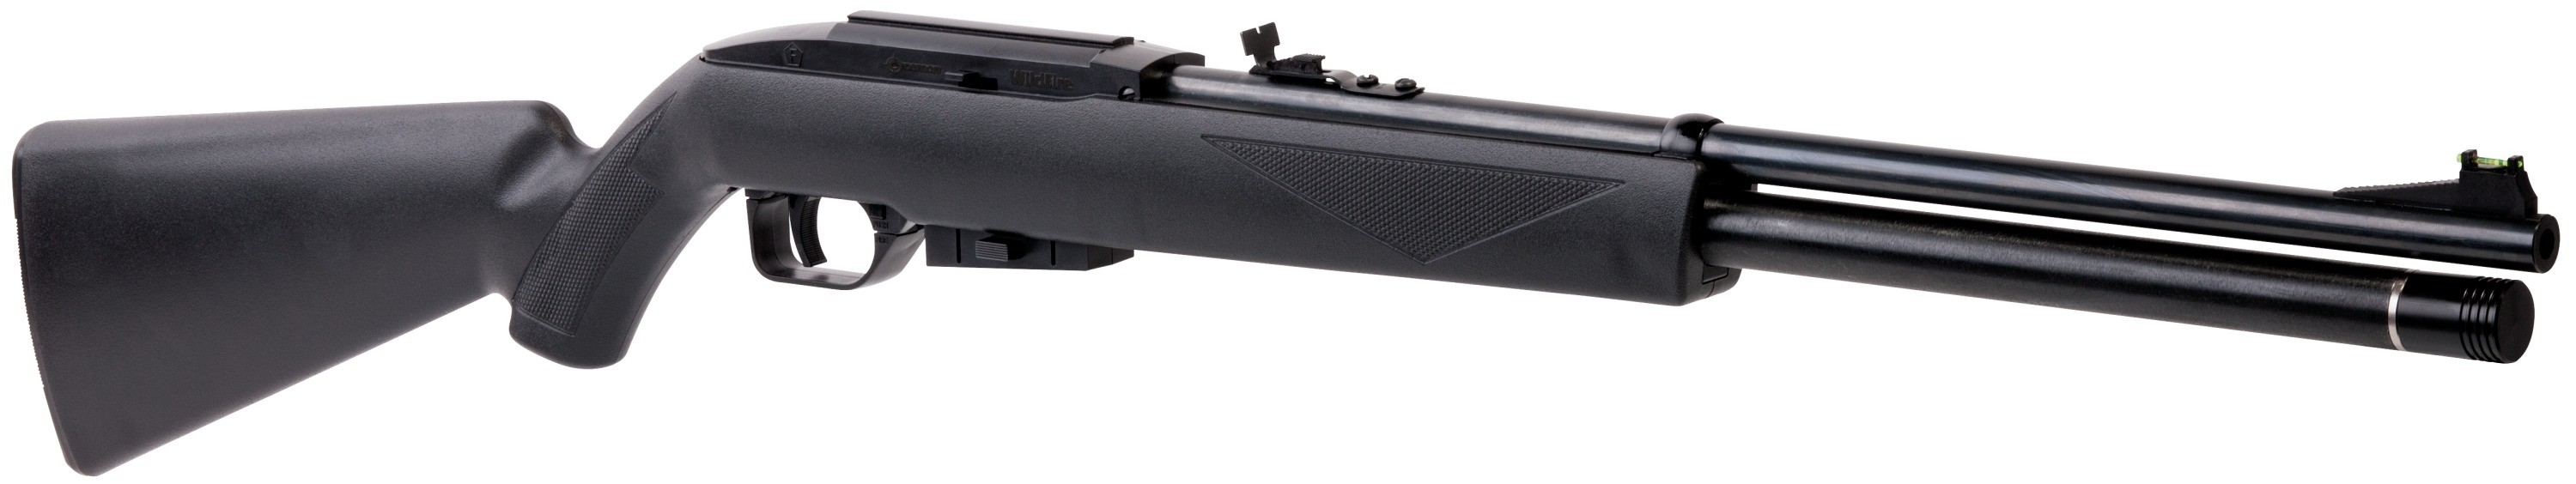 Benjamin WildFire BPWF17 PCP Air Rifles .177 Cal Multi-Shot by Benjamin